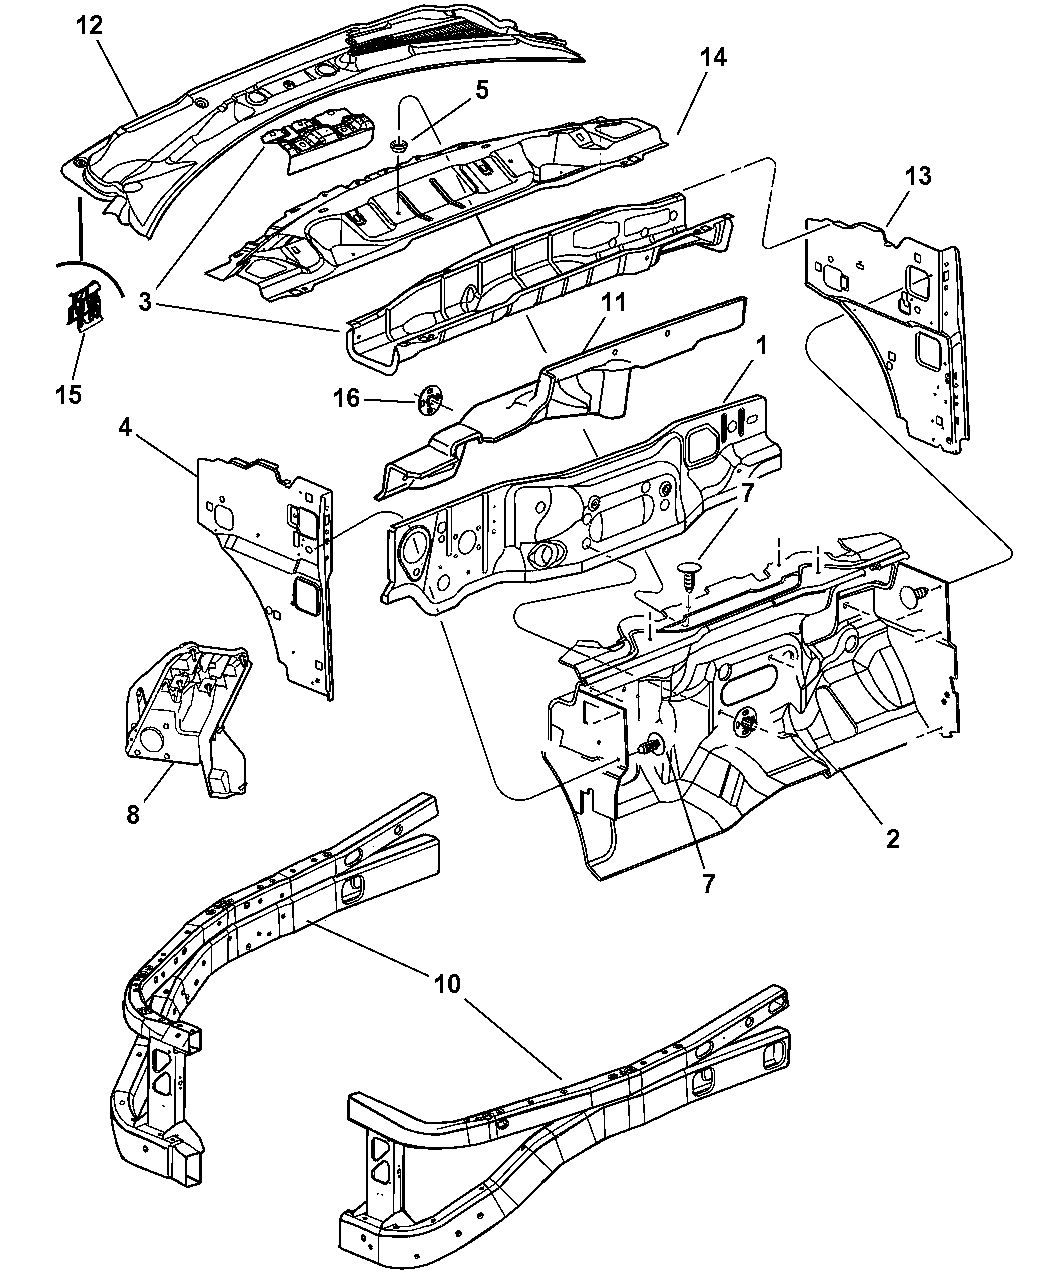 additionally I2122340 7 as well GB 890L 900 Map also  also  further  in addition  as well 00I66721 14 besides  further 61268 b8673b323d furthermore . on chrysler aspen oem parts diagram